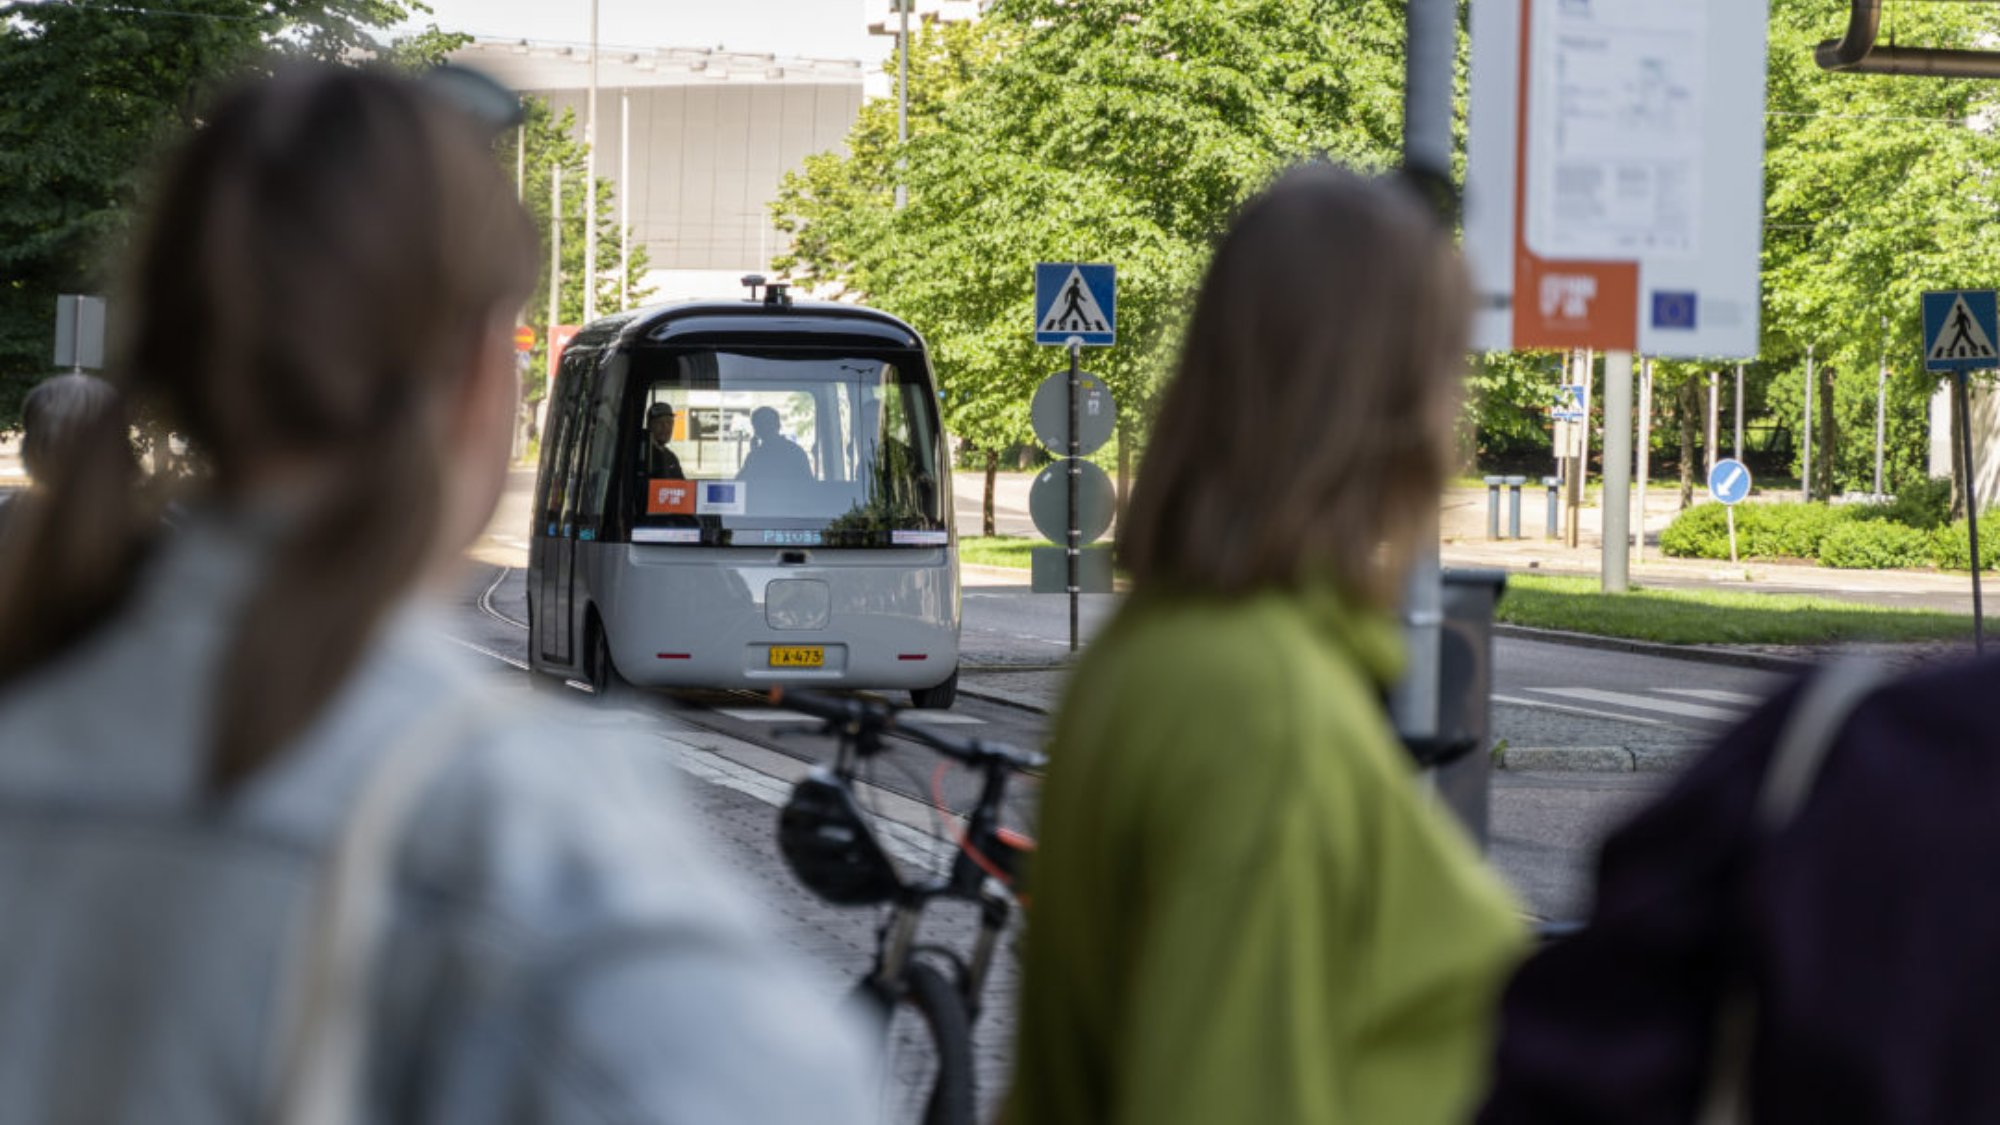 People admiring a driverless bus.